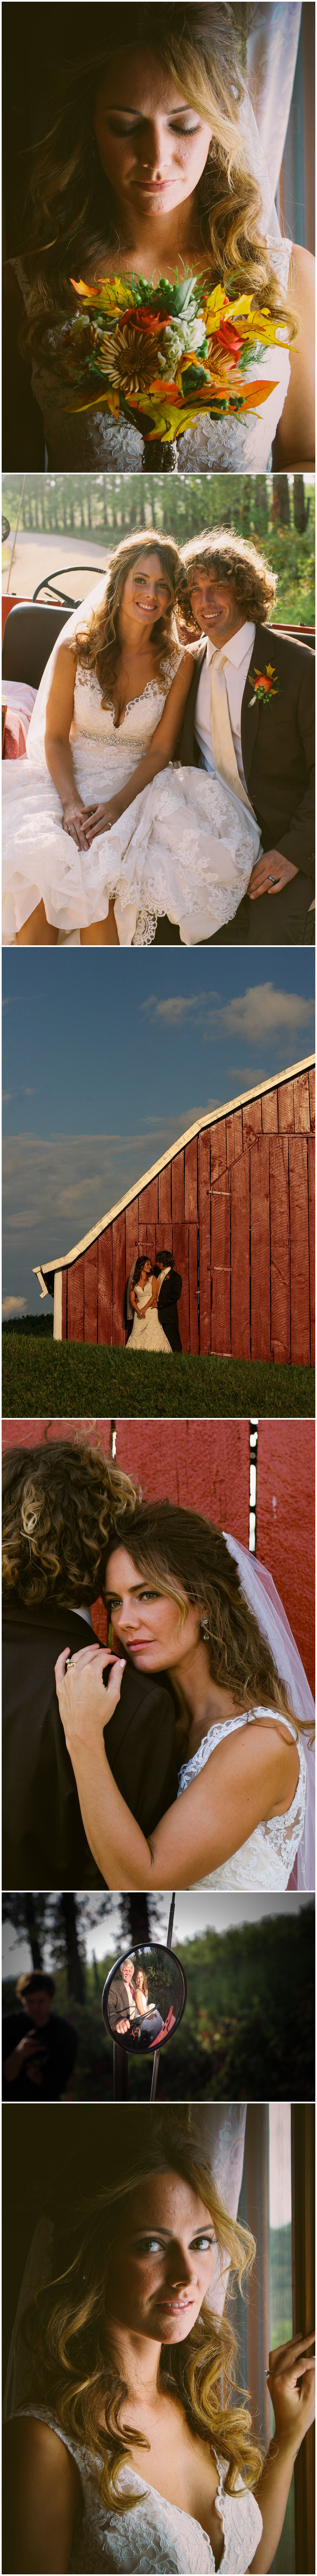 SE MN Wedding Photography: John and Annika